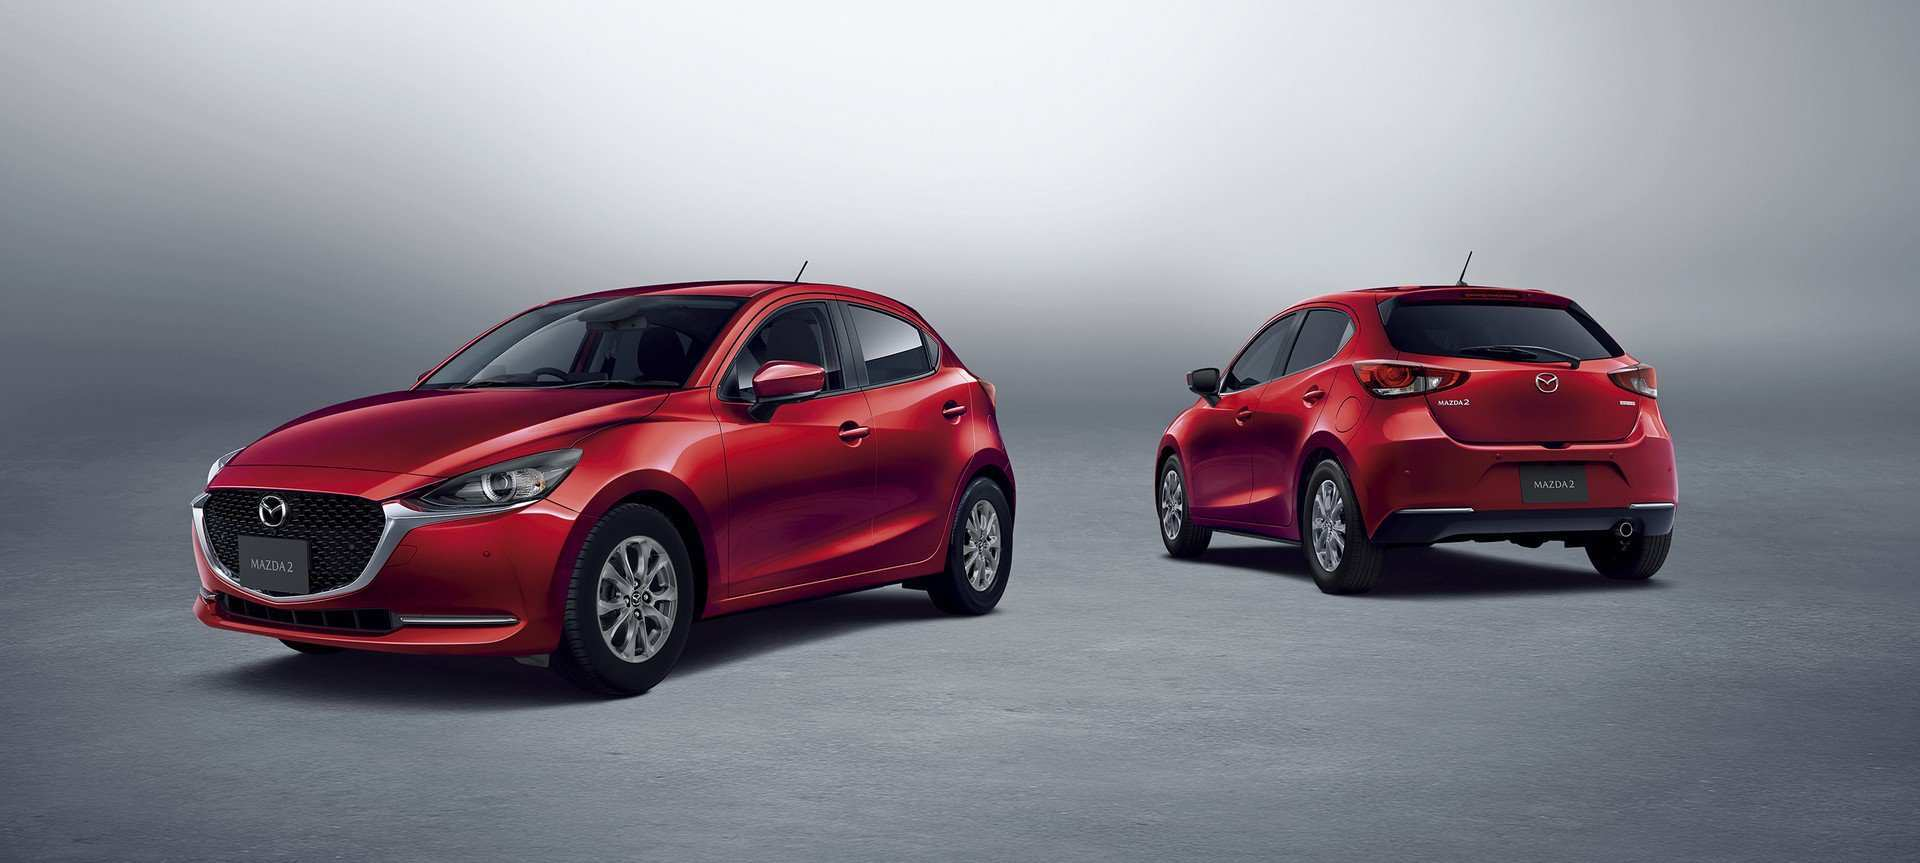 58 All New Mazda 2 Hatchback 2020 Redesign And Review